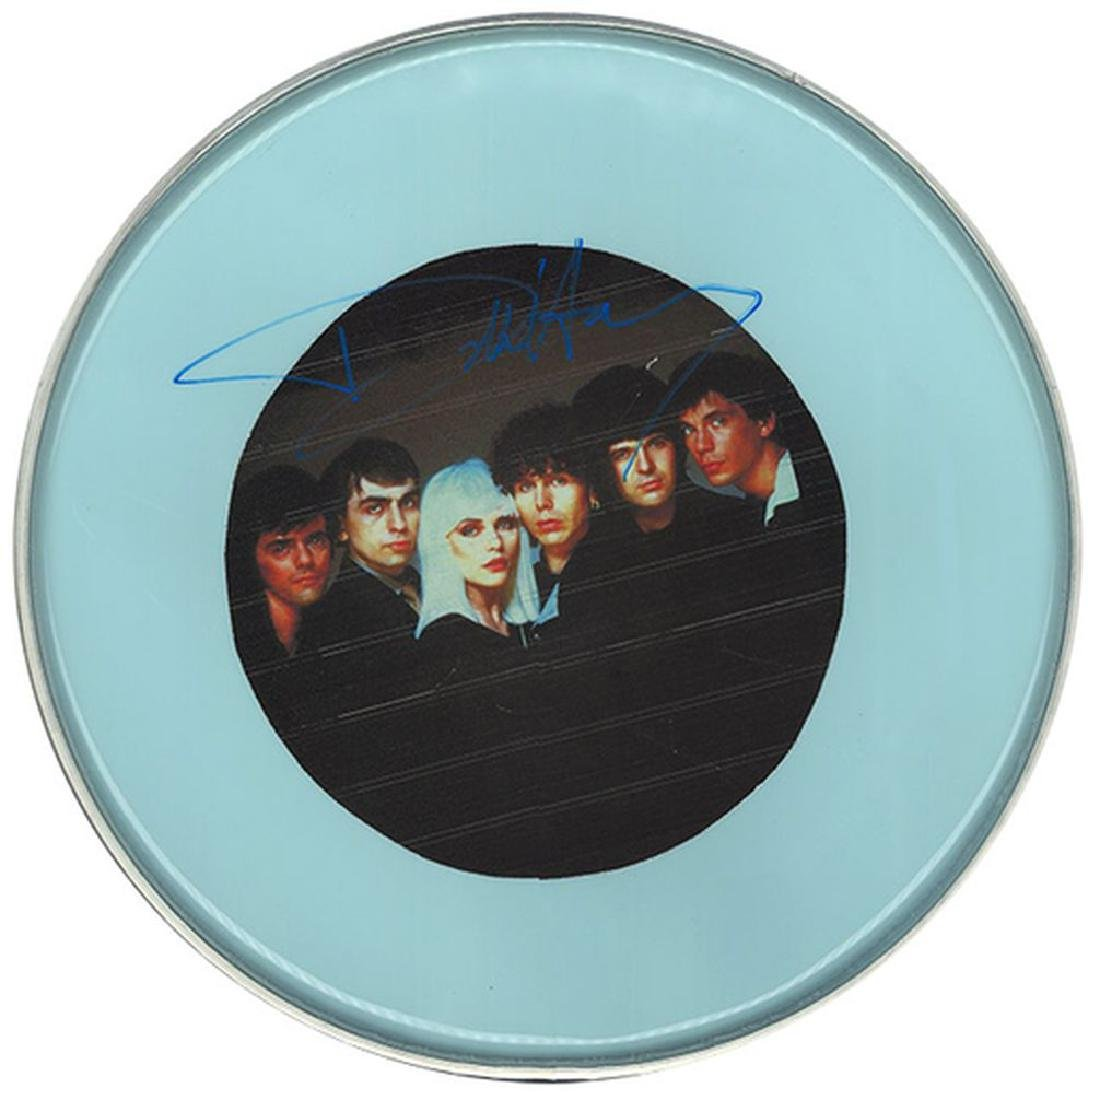 Blondie Signed Drum Head